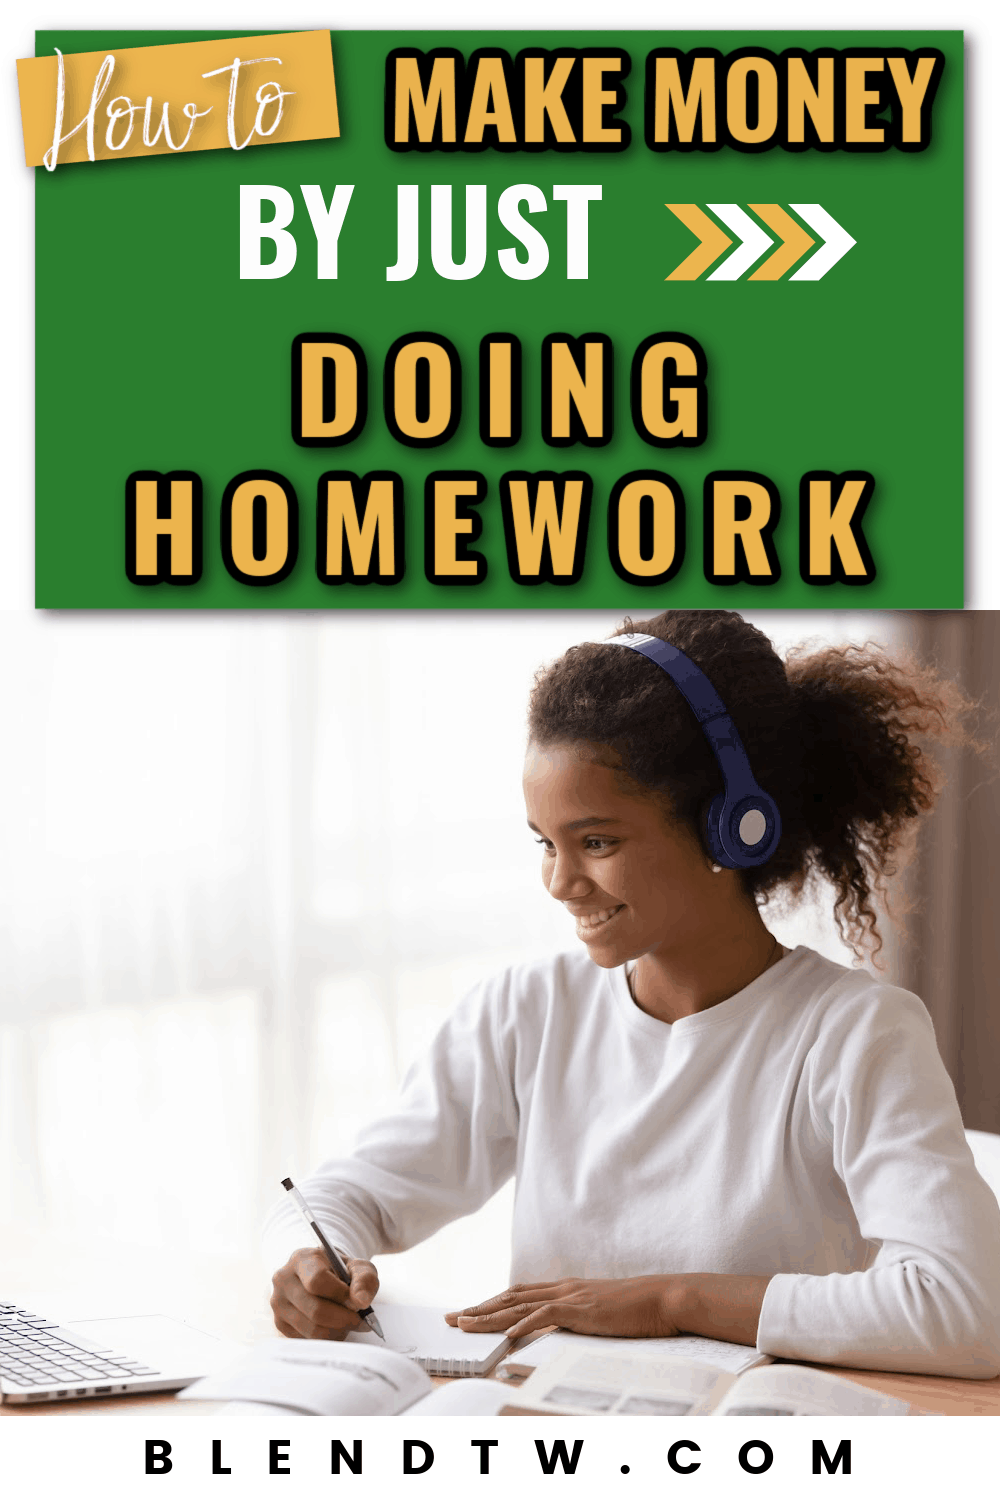 How to make money by just doing homework